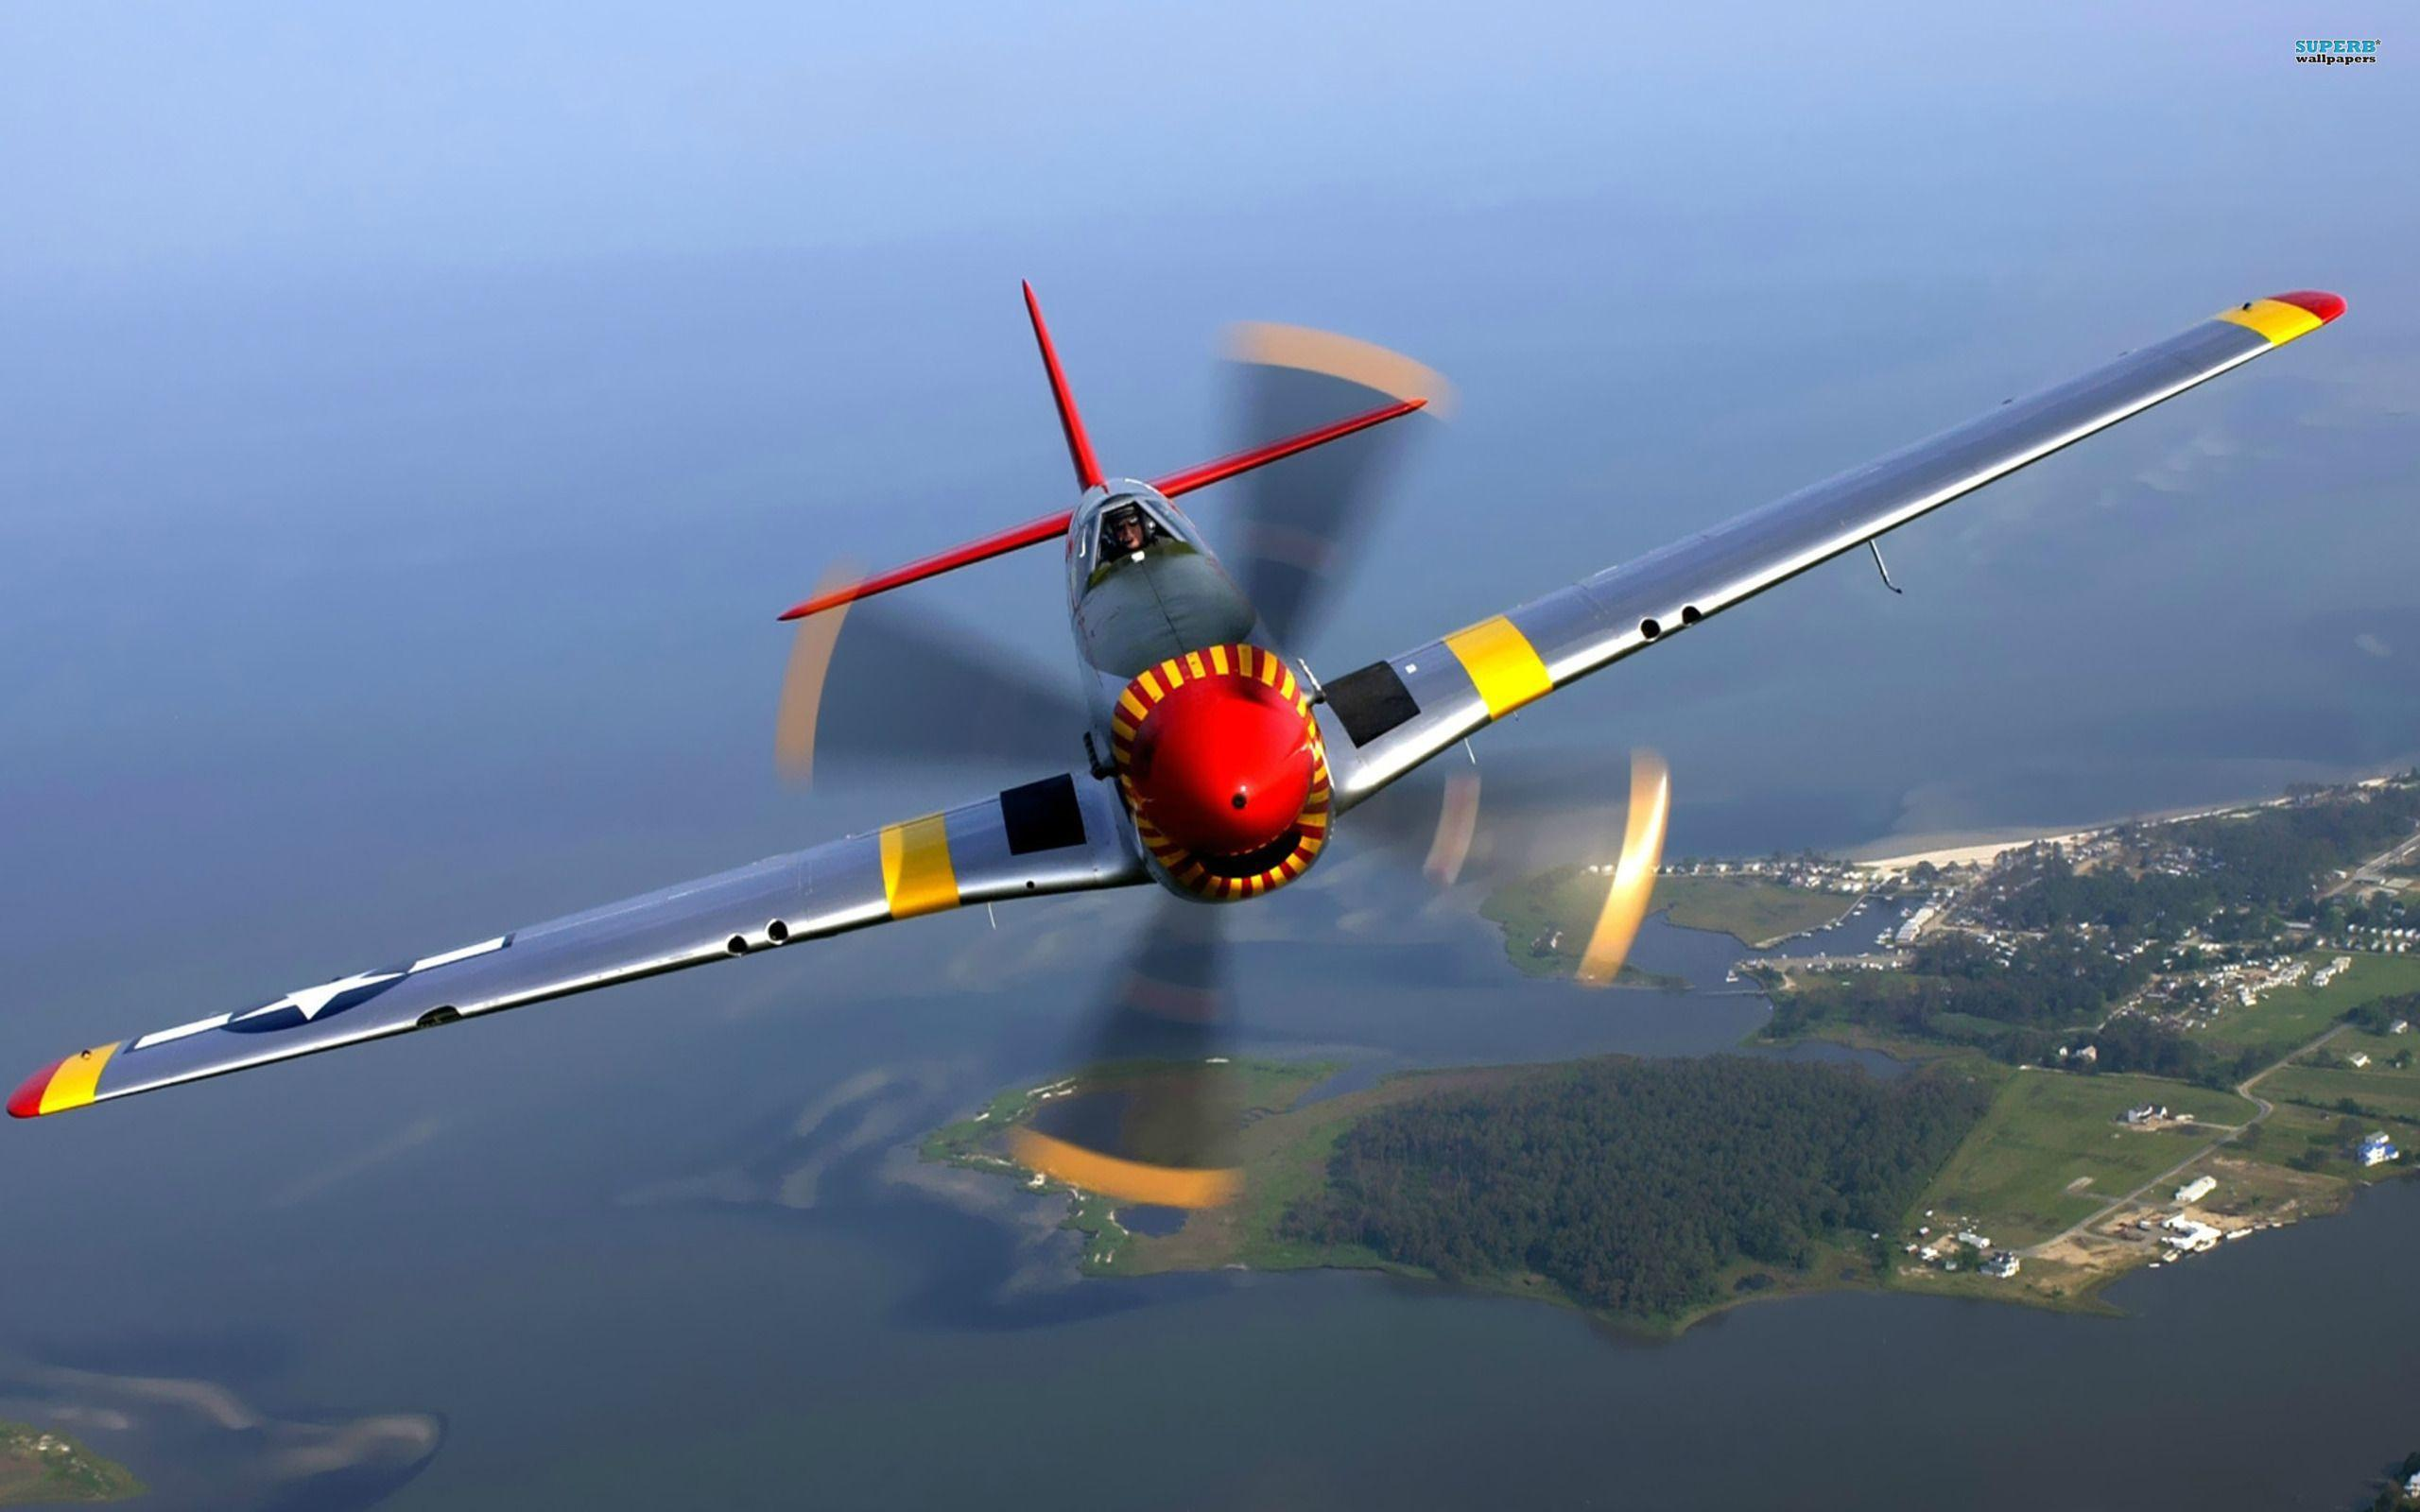 P 51 Mustang Wallpapers Hd Desktop 10 HD Wallpapers